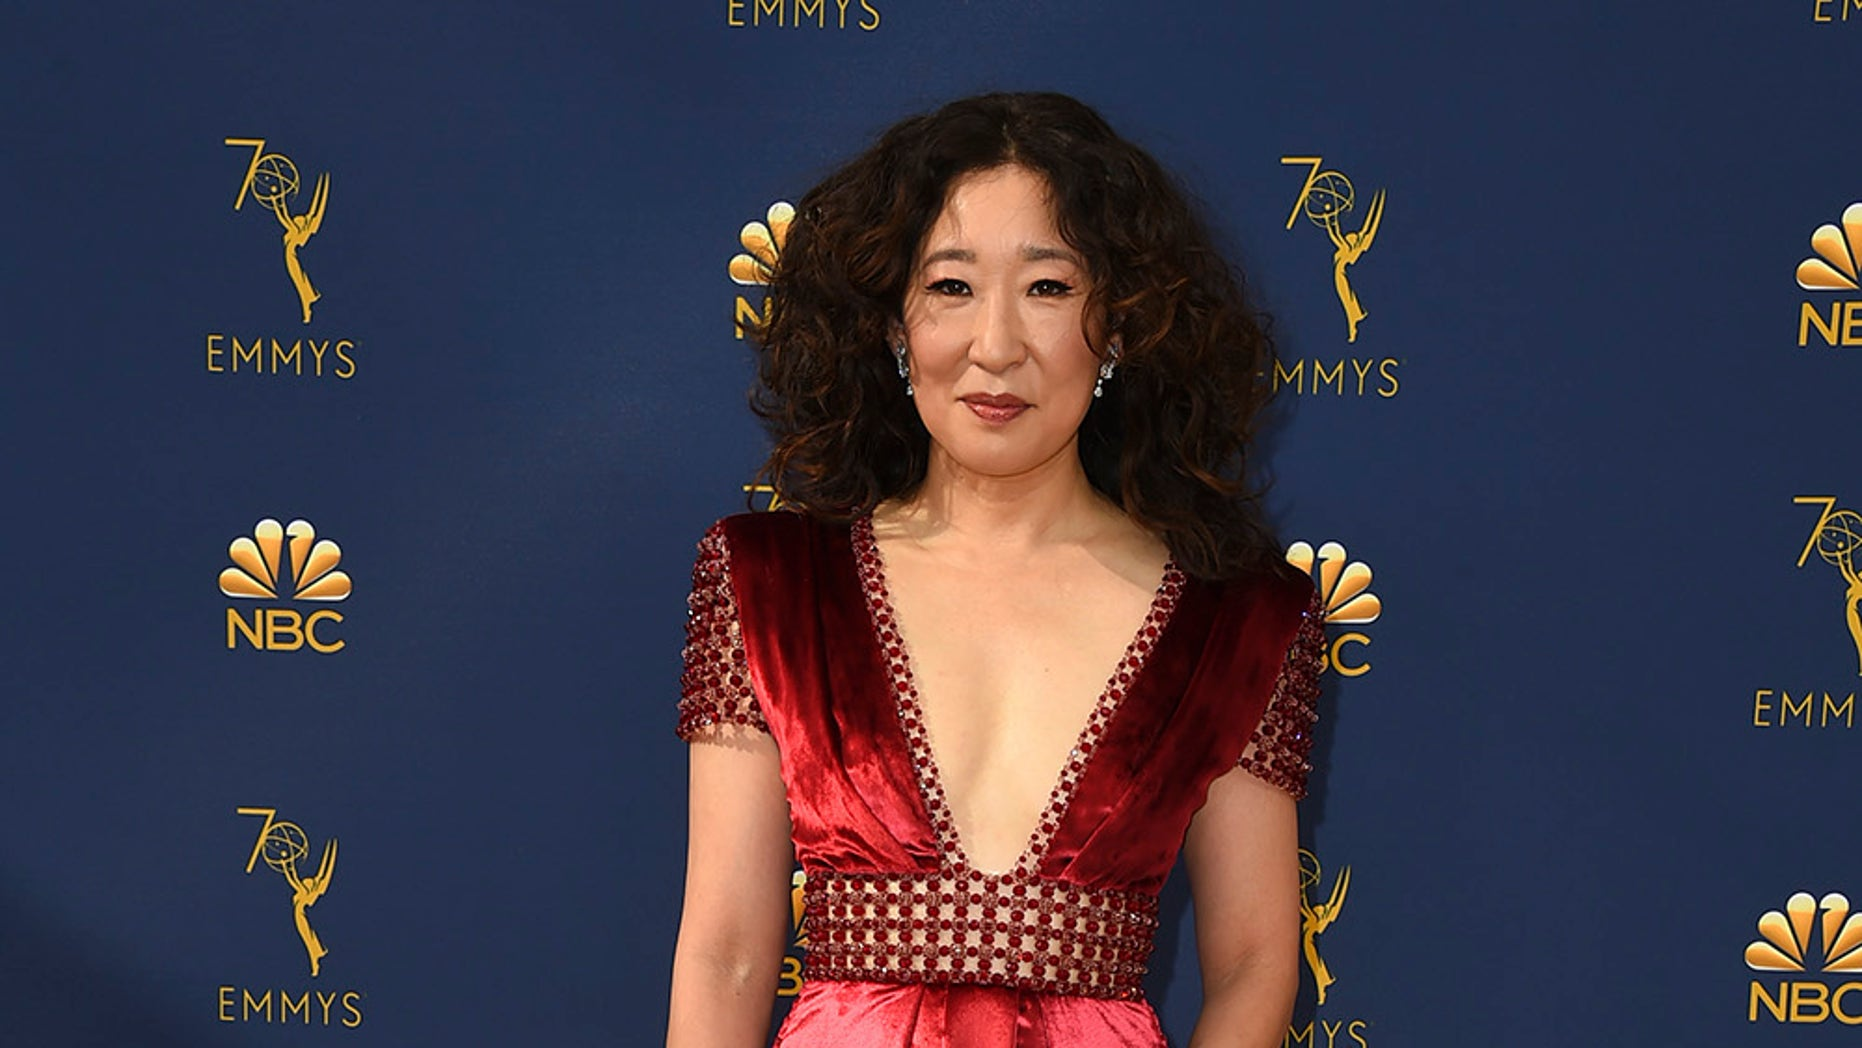 Sandra Oh arrives at the 70th Primetime Emmy Awards on Monday, Sept. 17, 2018, at the Microsoft Theater in Los Angeles. (Photo by Jordan Strauss/Invision/AP)